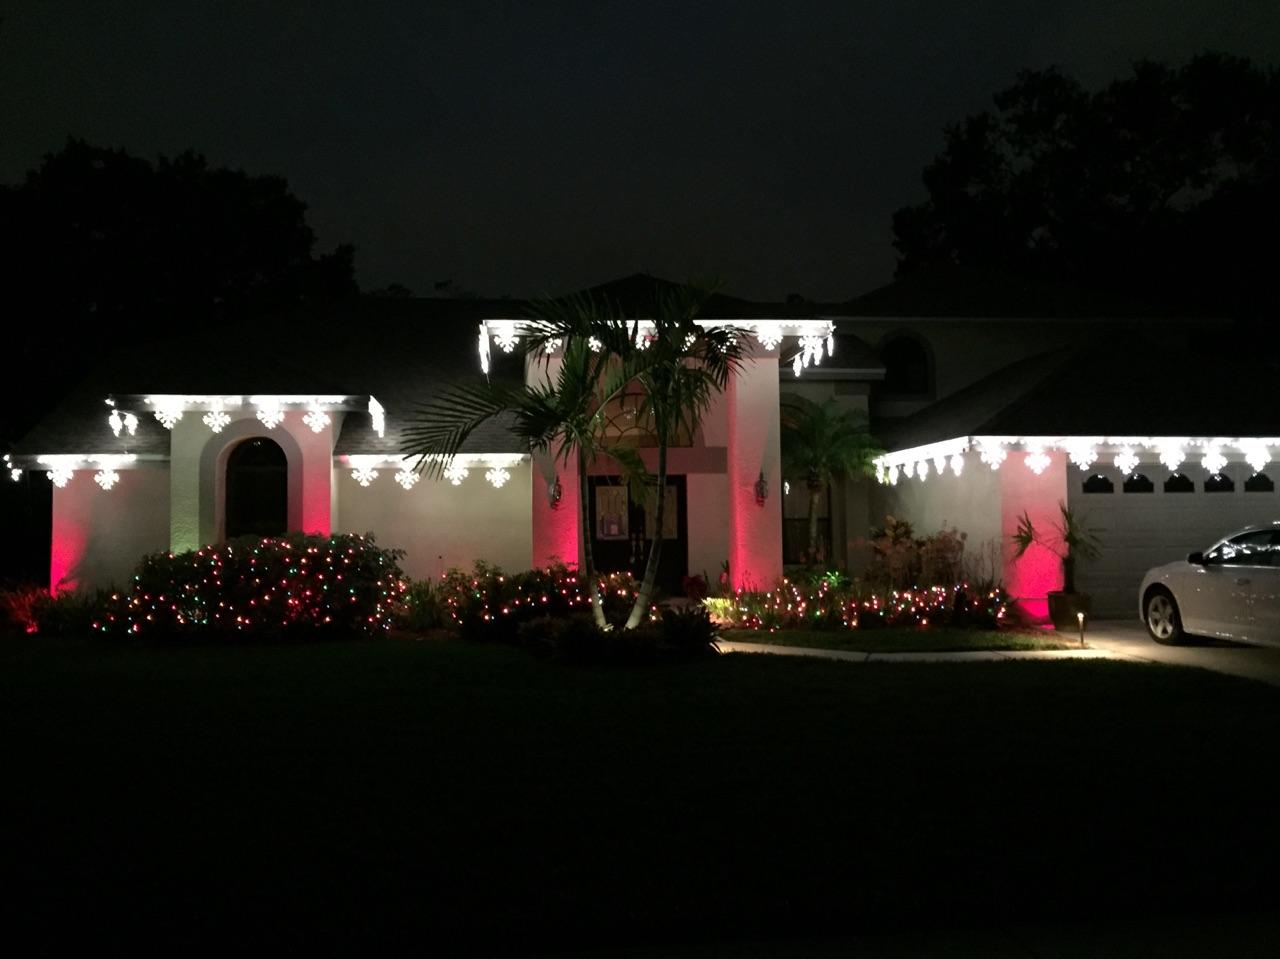 Clearwater and tampa bay outdoor lighting enlivened for the holidays clearwater holiday lighting using the addition of colored lens covers aloadofball Gallery